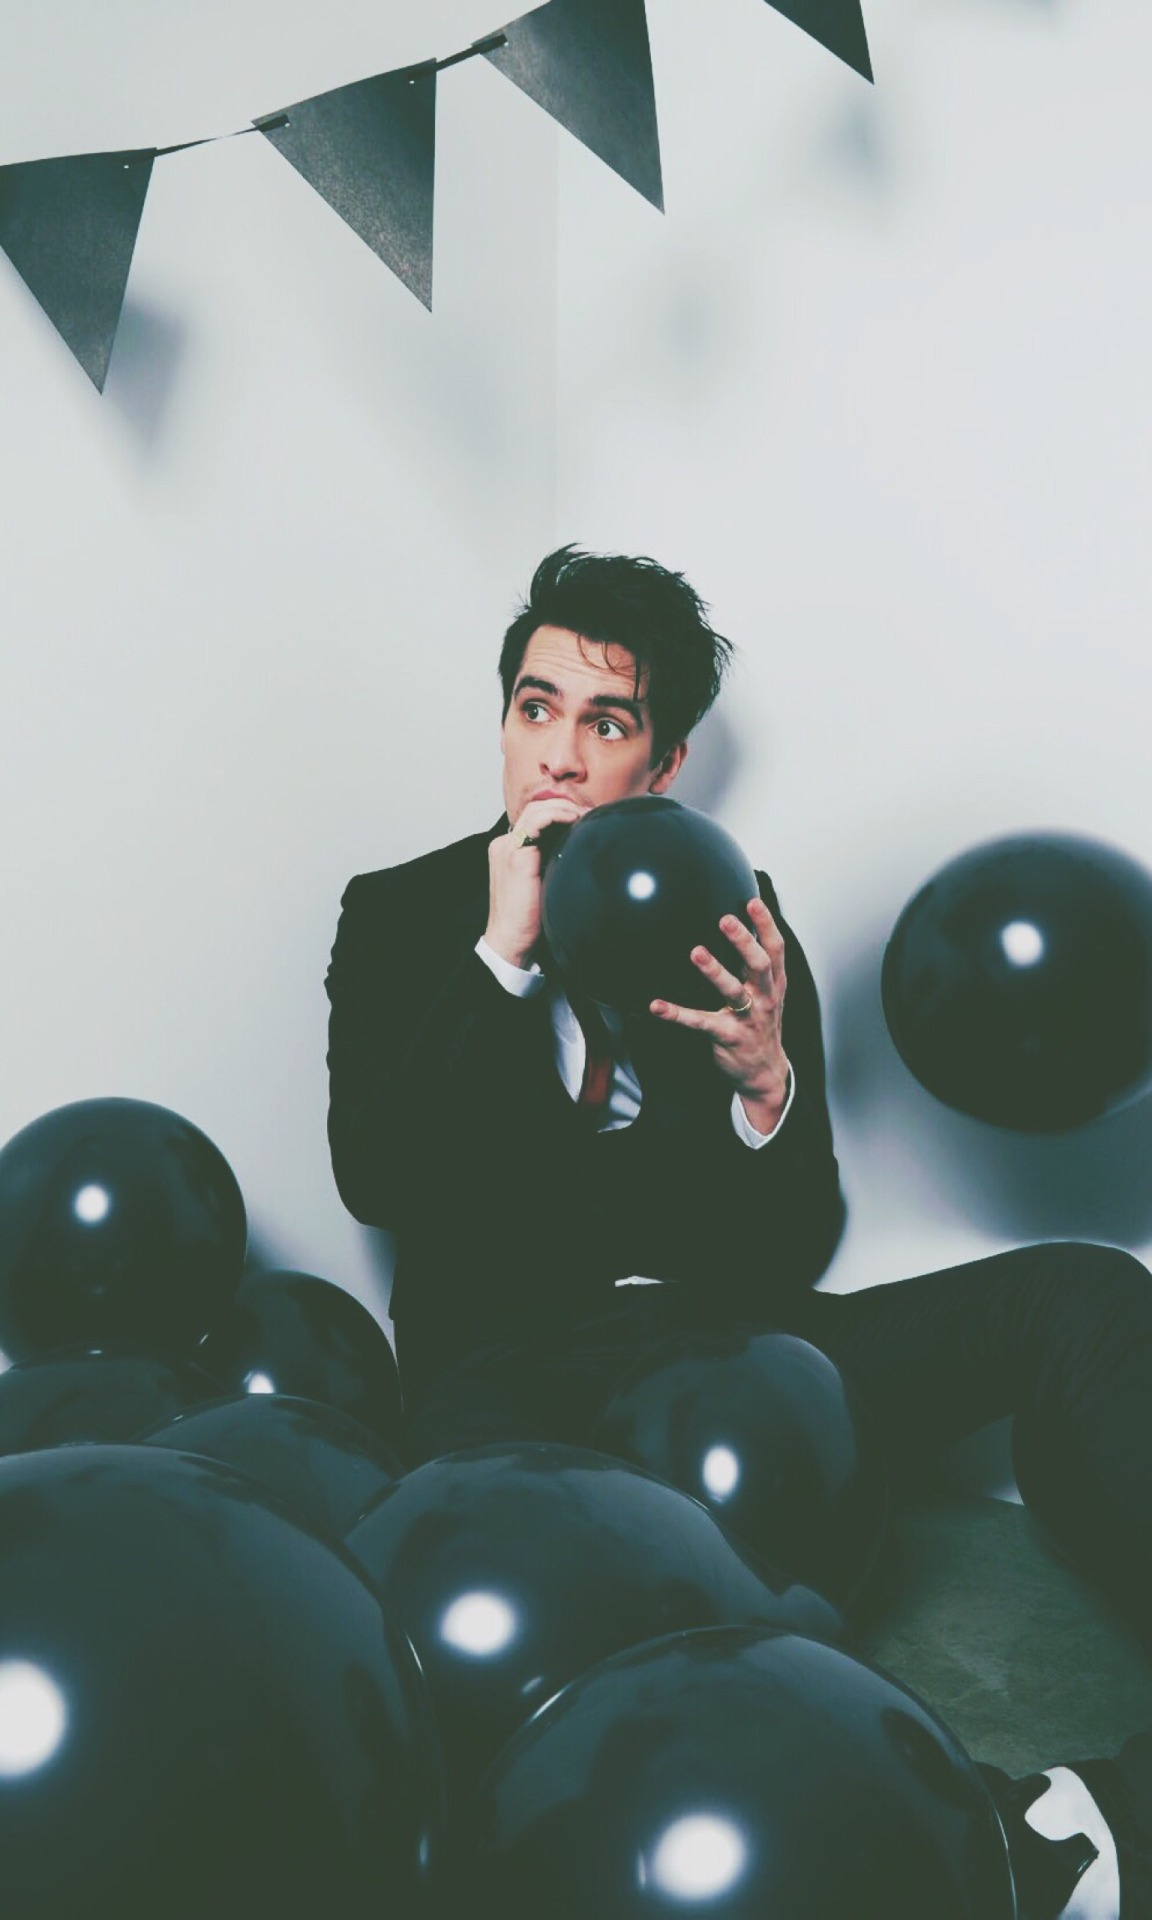 Fall Out Boy Lyrics Wallpaper Panic At The Disco Brendon Urie These Are Perfect Size